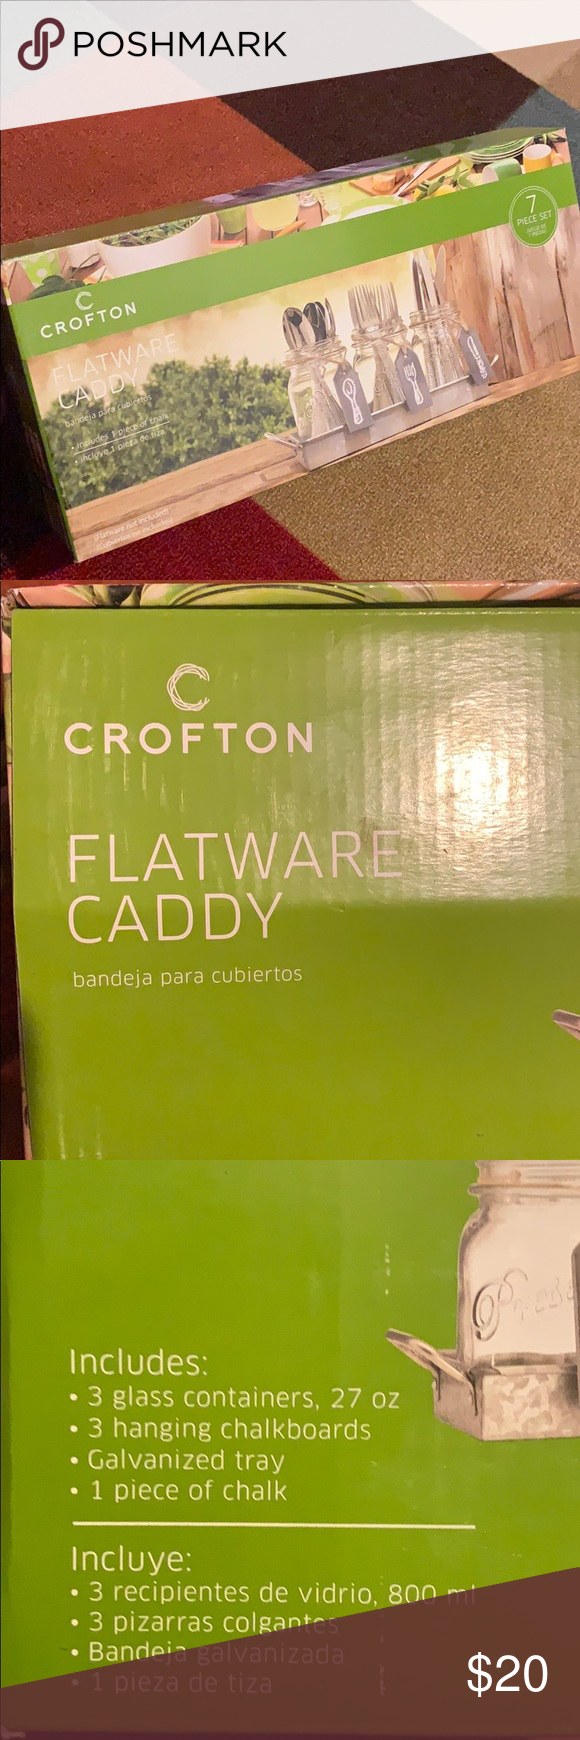 Crofton Flatware Caddy Nwt Flatware Caddy Crofton Caddy